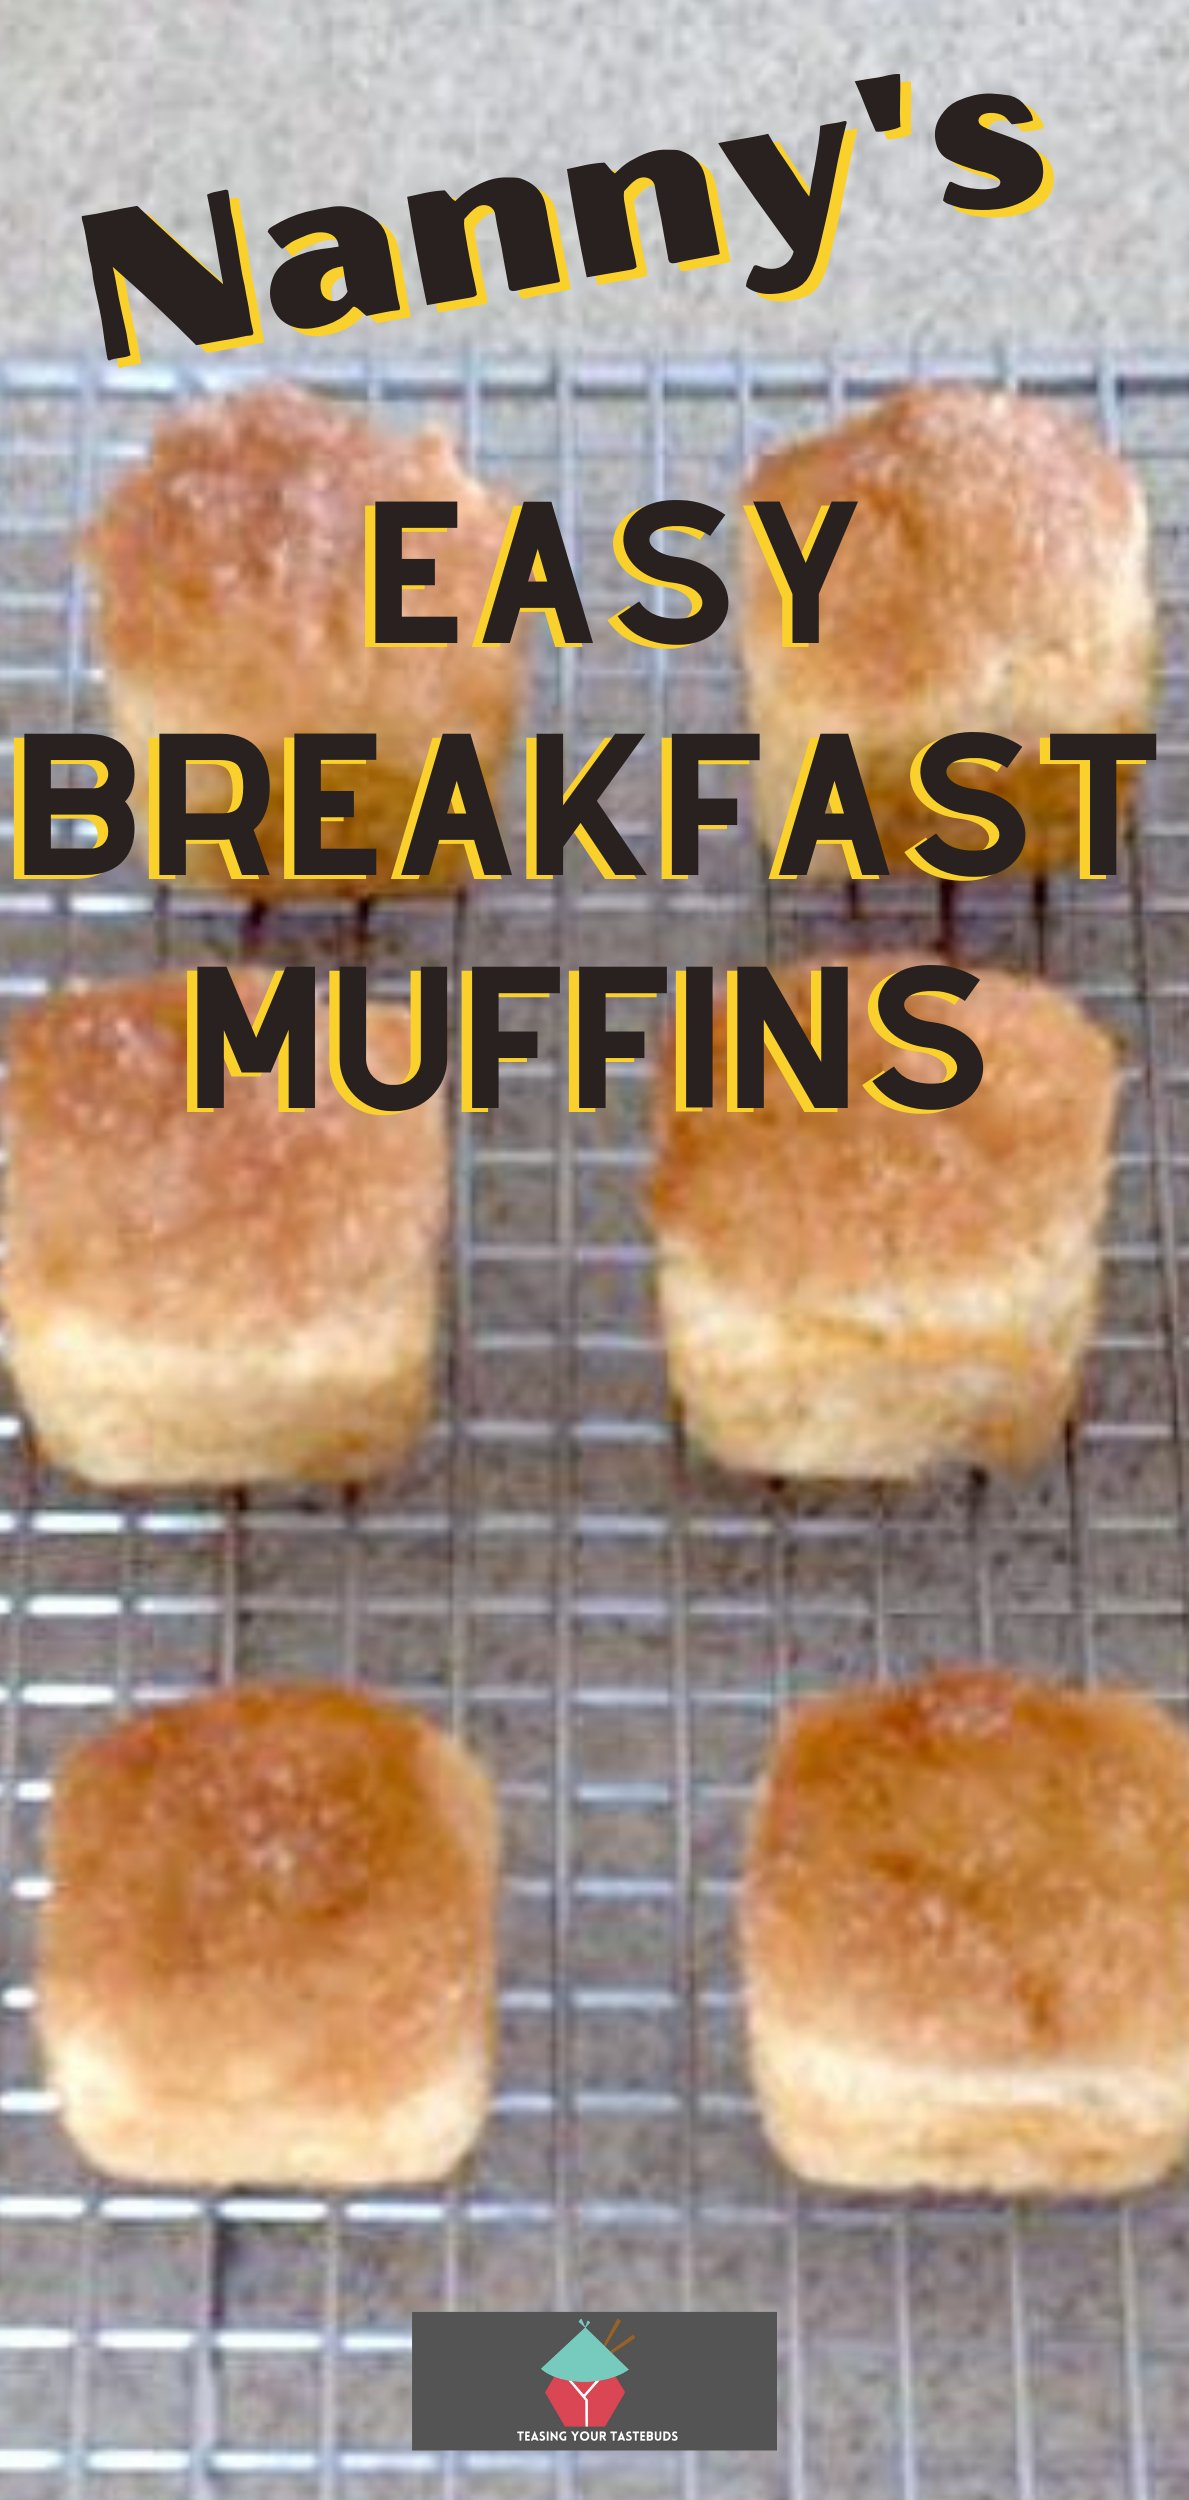 Nanny's Easy Breakfast Muffins are ideal for breakfast or brunch, soft fluffy muffins topped with delicious cinnamon and sugar butter. Perfect with a cup of coffee!